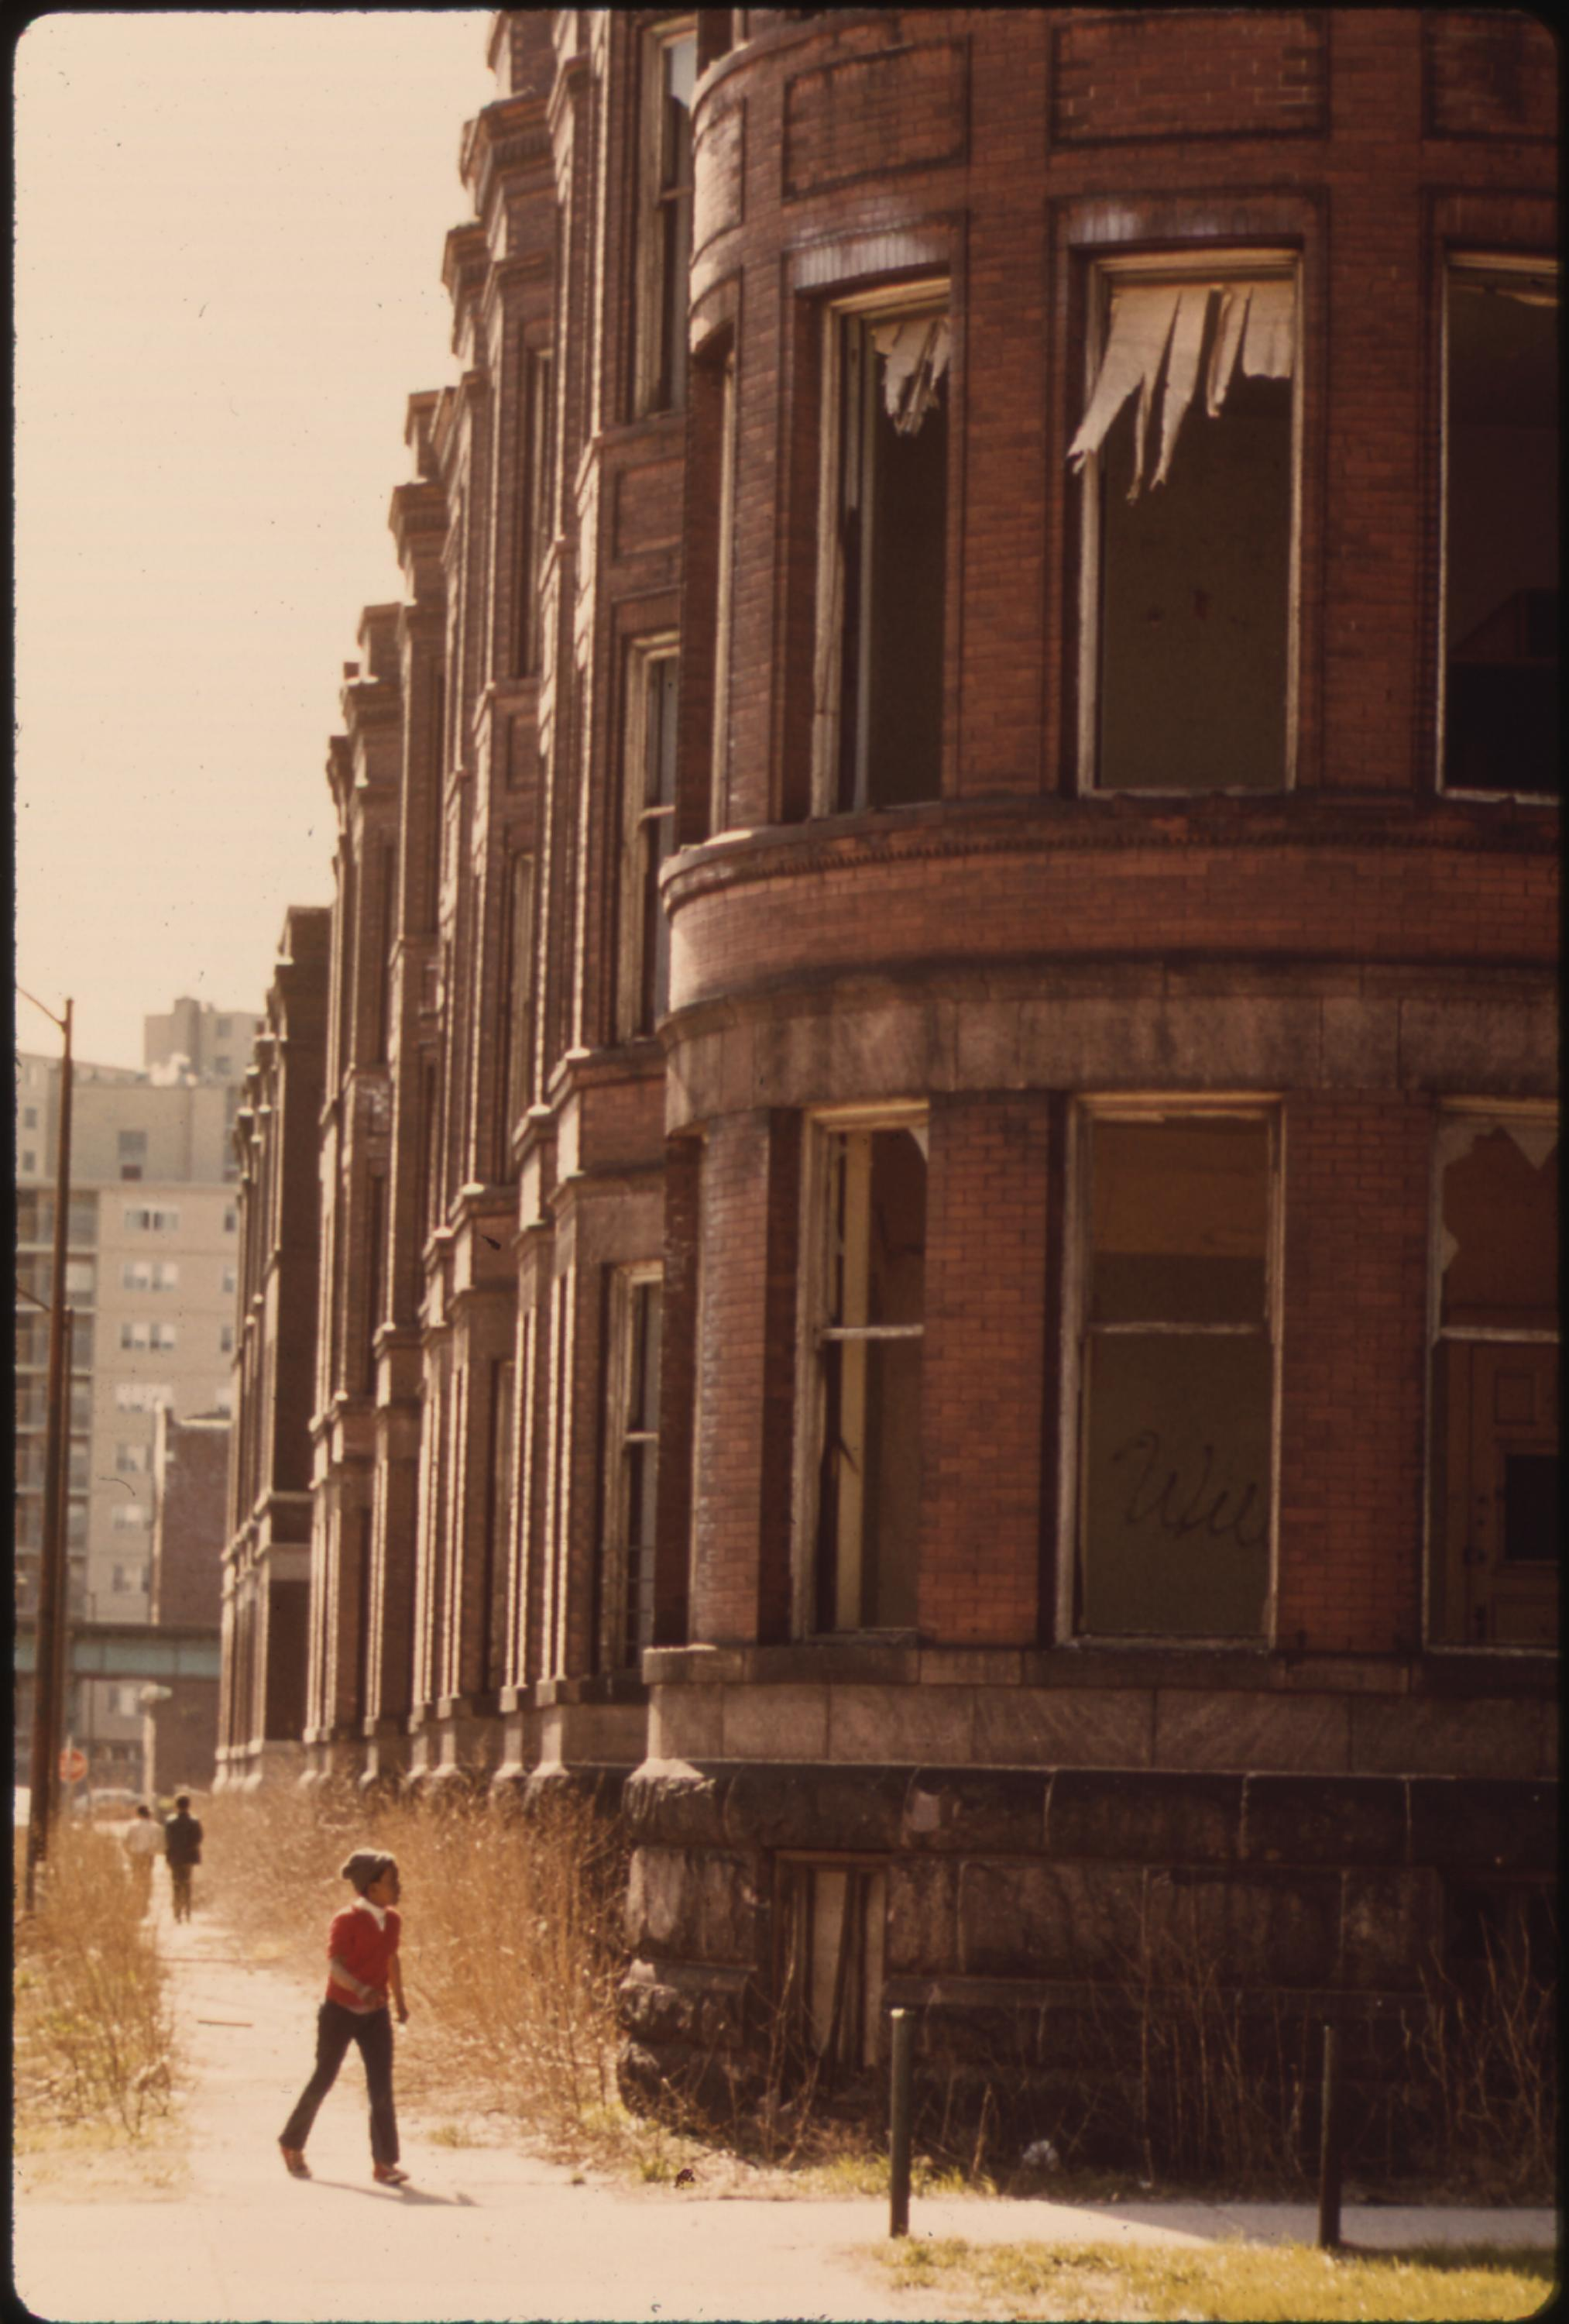 Empty Housing In The Ghetto On Chicago's South Side Structures Such As This Have Been Systematically Vacated As A Result Of Fires, Vandalism Or Failure By Owners To Provide Basic Tenant Services, 05:1973 John H. White